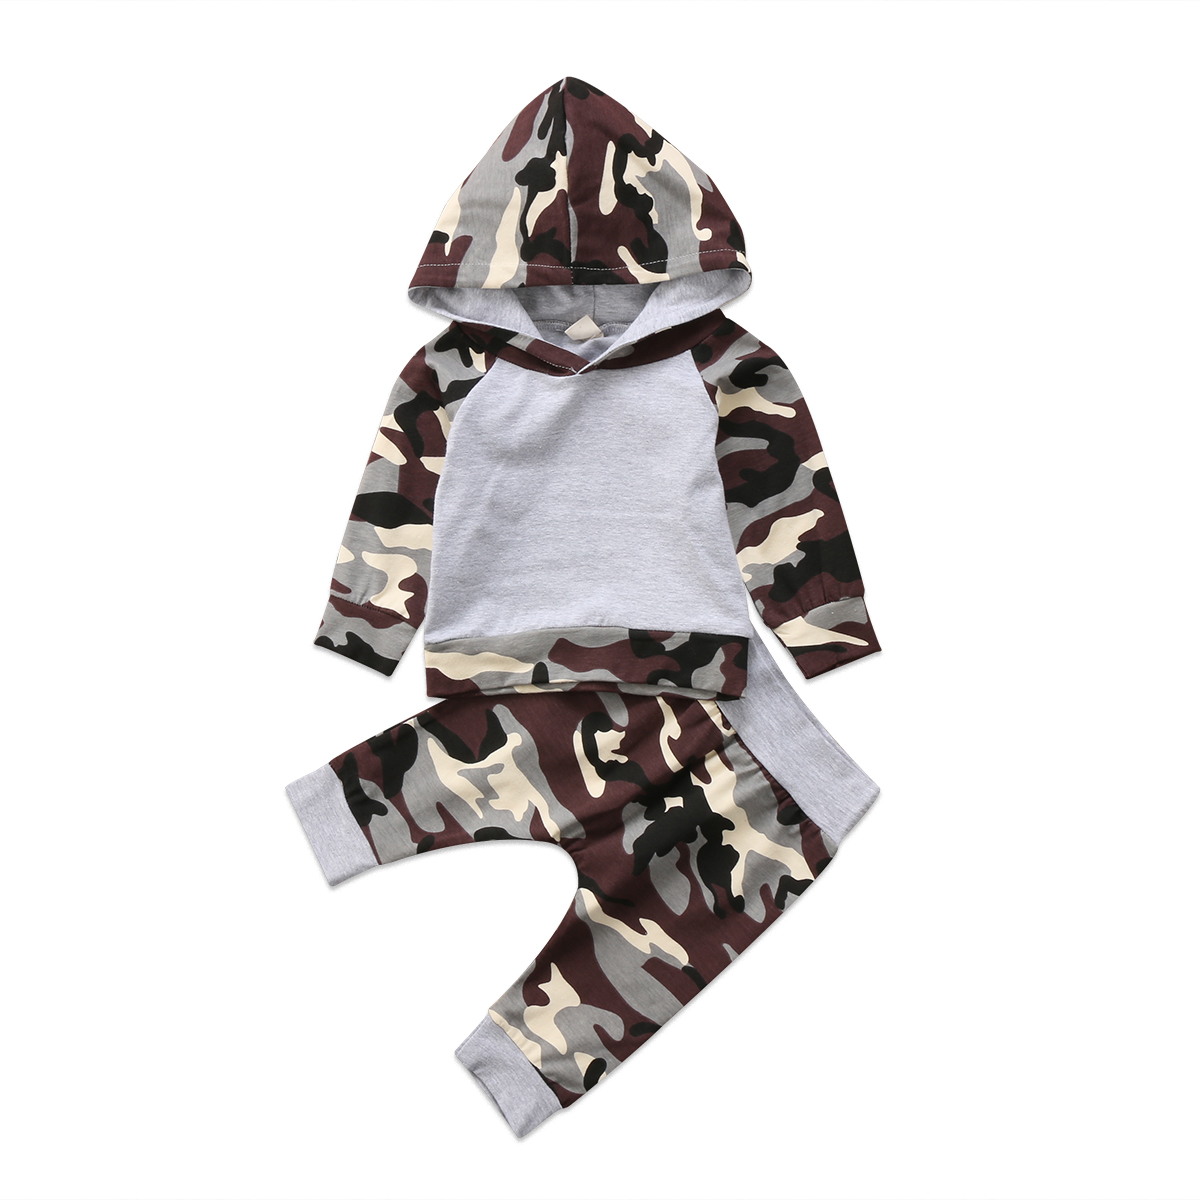 2Pcs Baby Clothing Newborn Kids Baby Boys Long sleeve Camo Hooded Sweatshirt Tops Pants Baby Home Outfits Set Clothes 0-24M